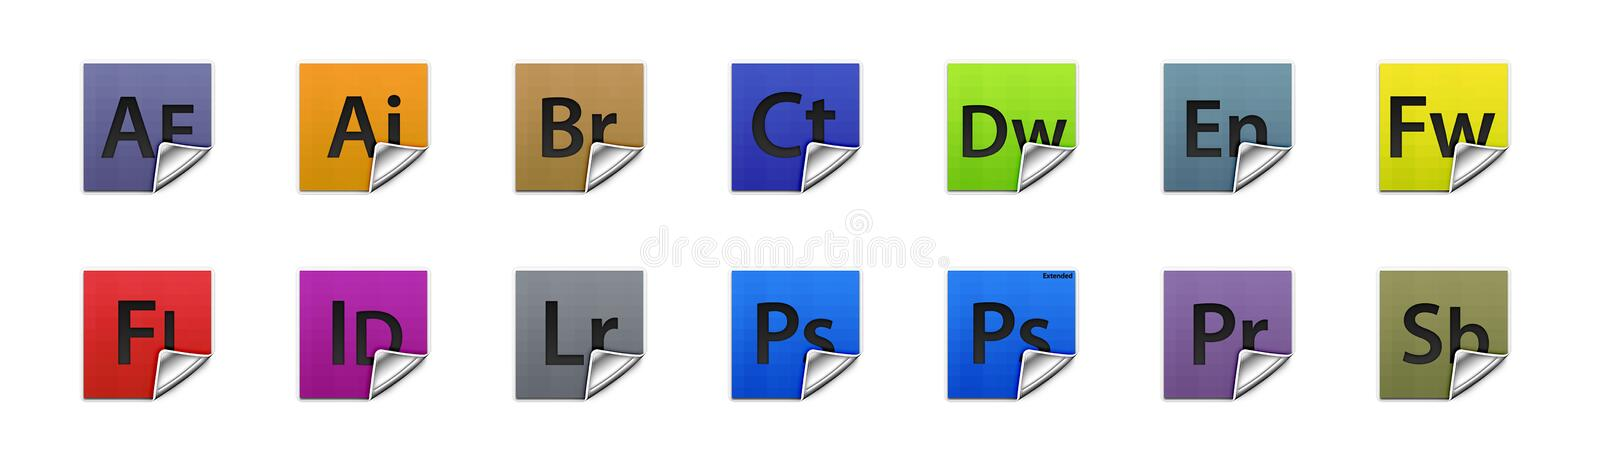 Buttons Adobe products vector illustration